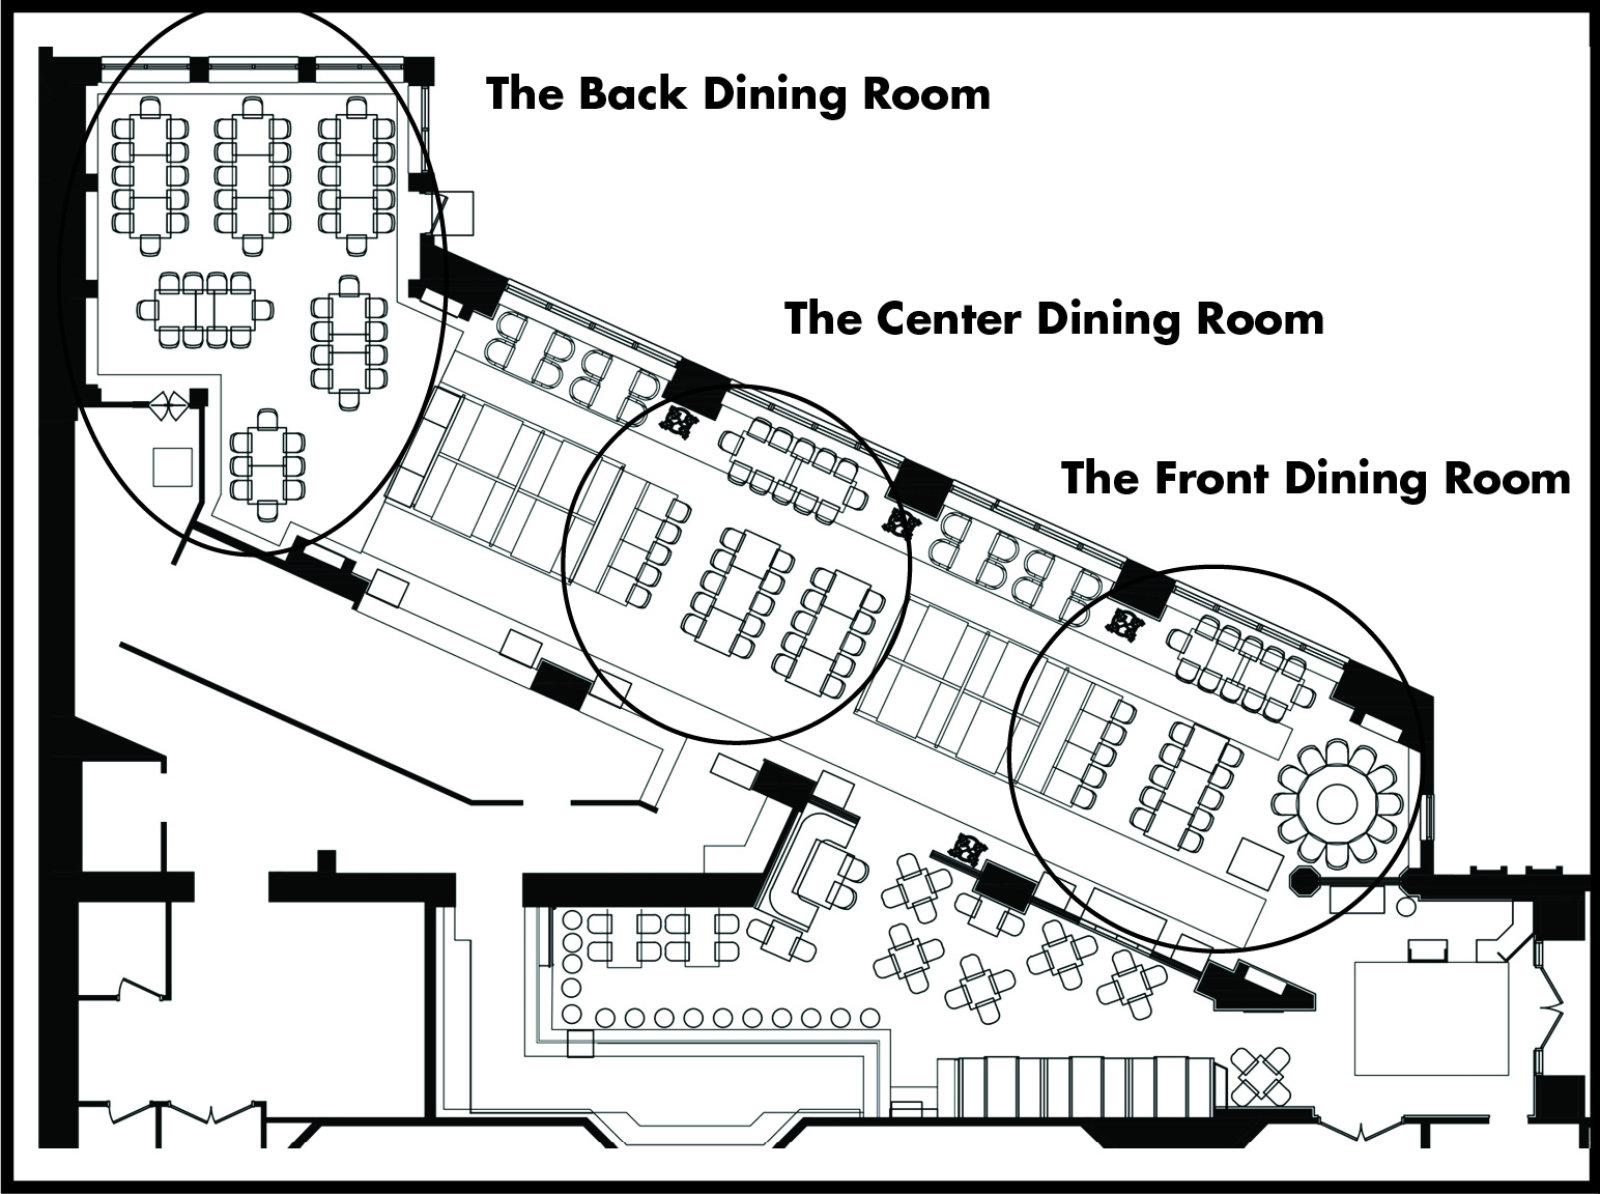 Dining Room Diagram